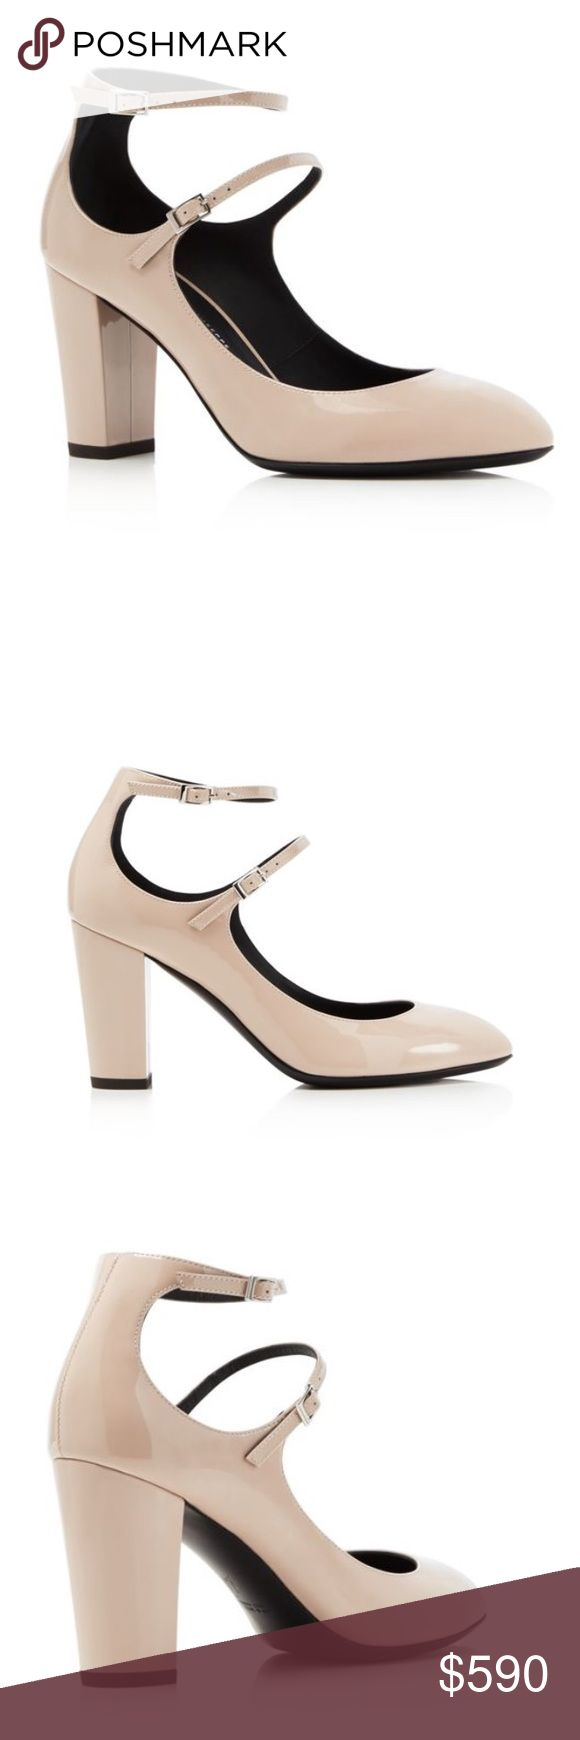 Giuseppe Zanotti Double Buckle Mary Janes🎀 Brand new in box! Come with dust bag! Giuseppe Zanotti Shoes Heels